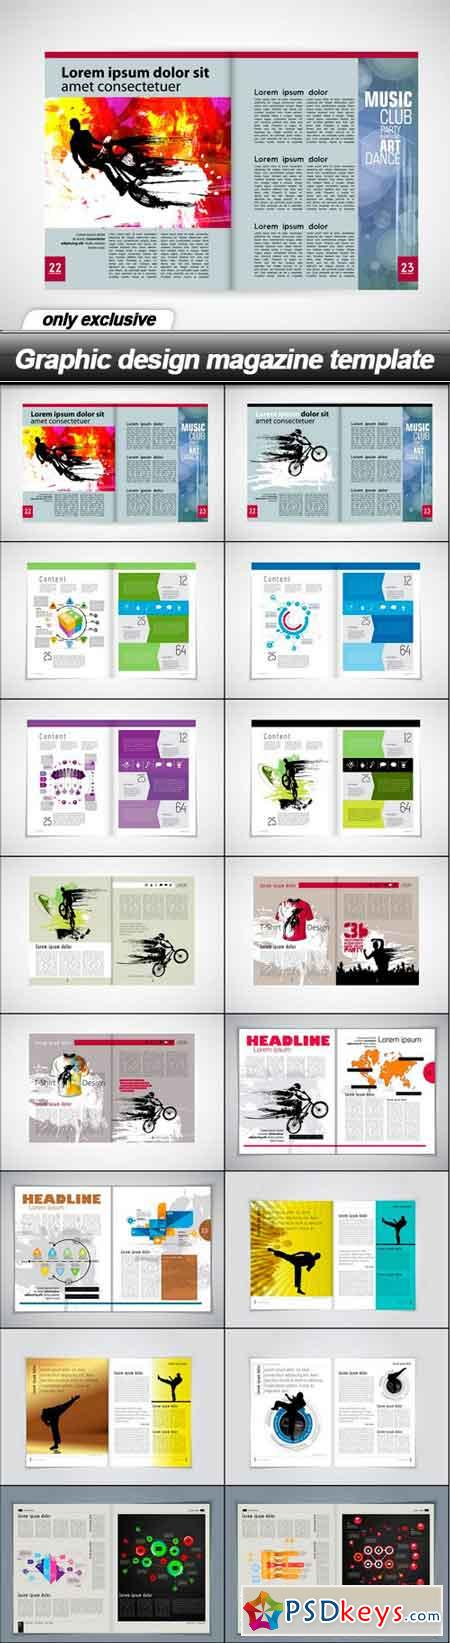 Graphic design magazine template - 16 UHQ JPEG